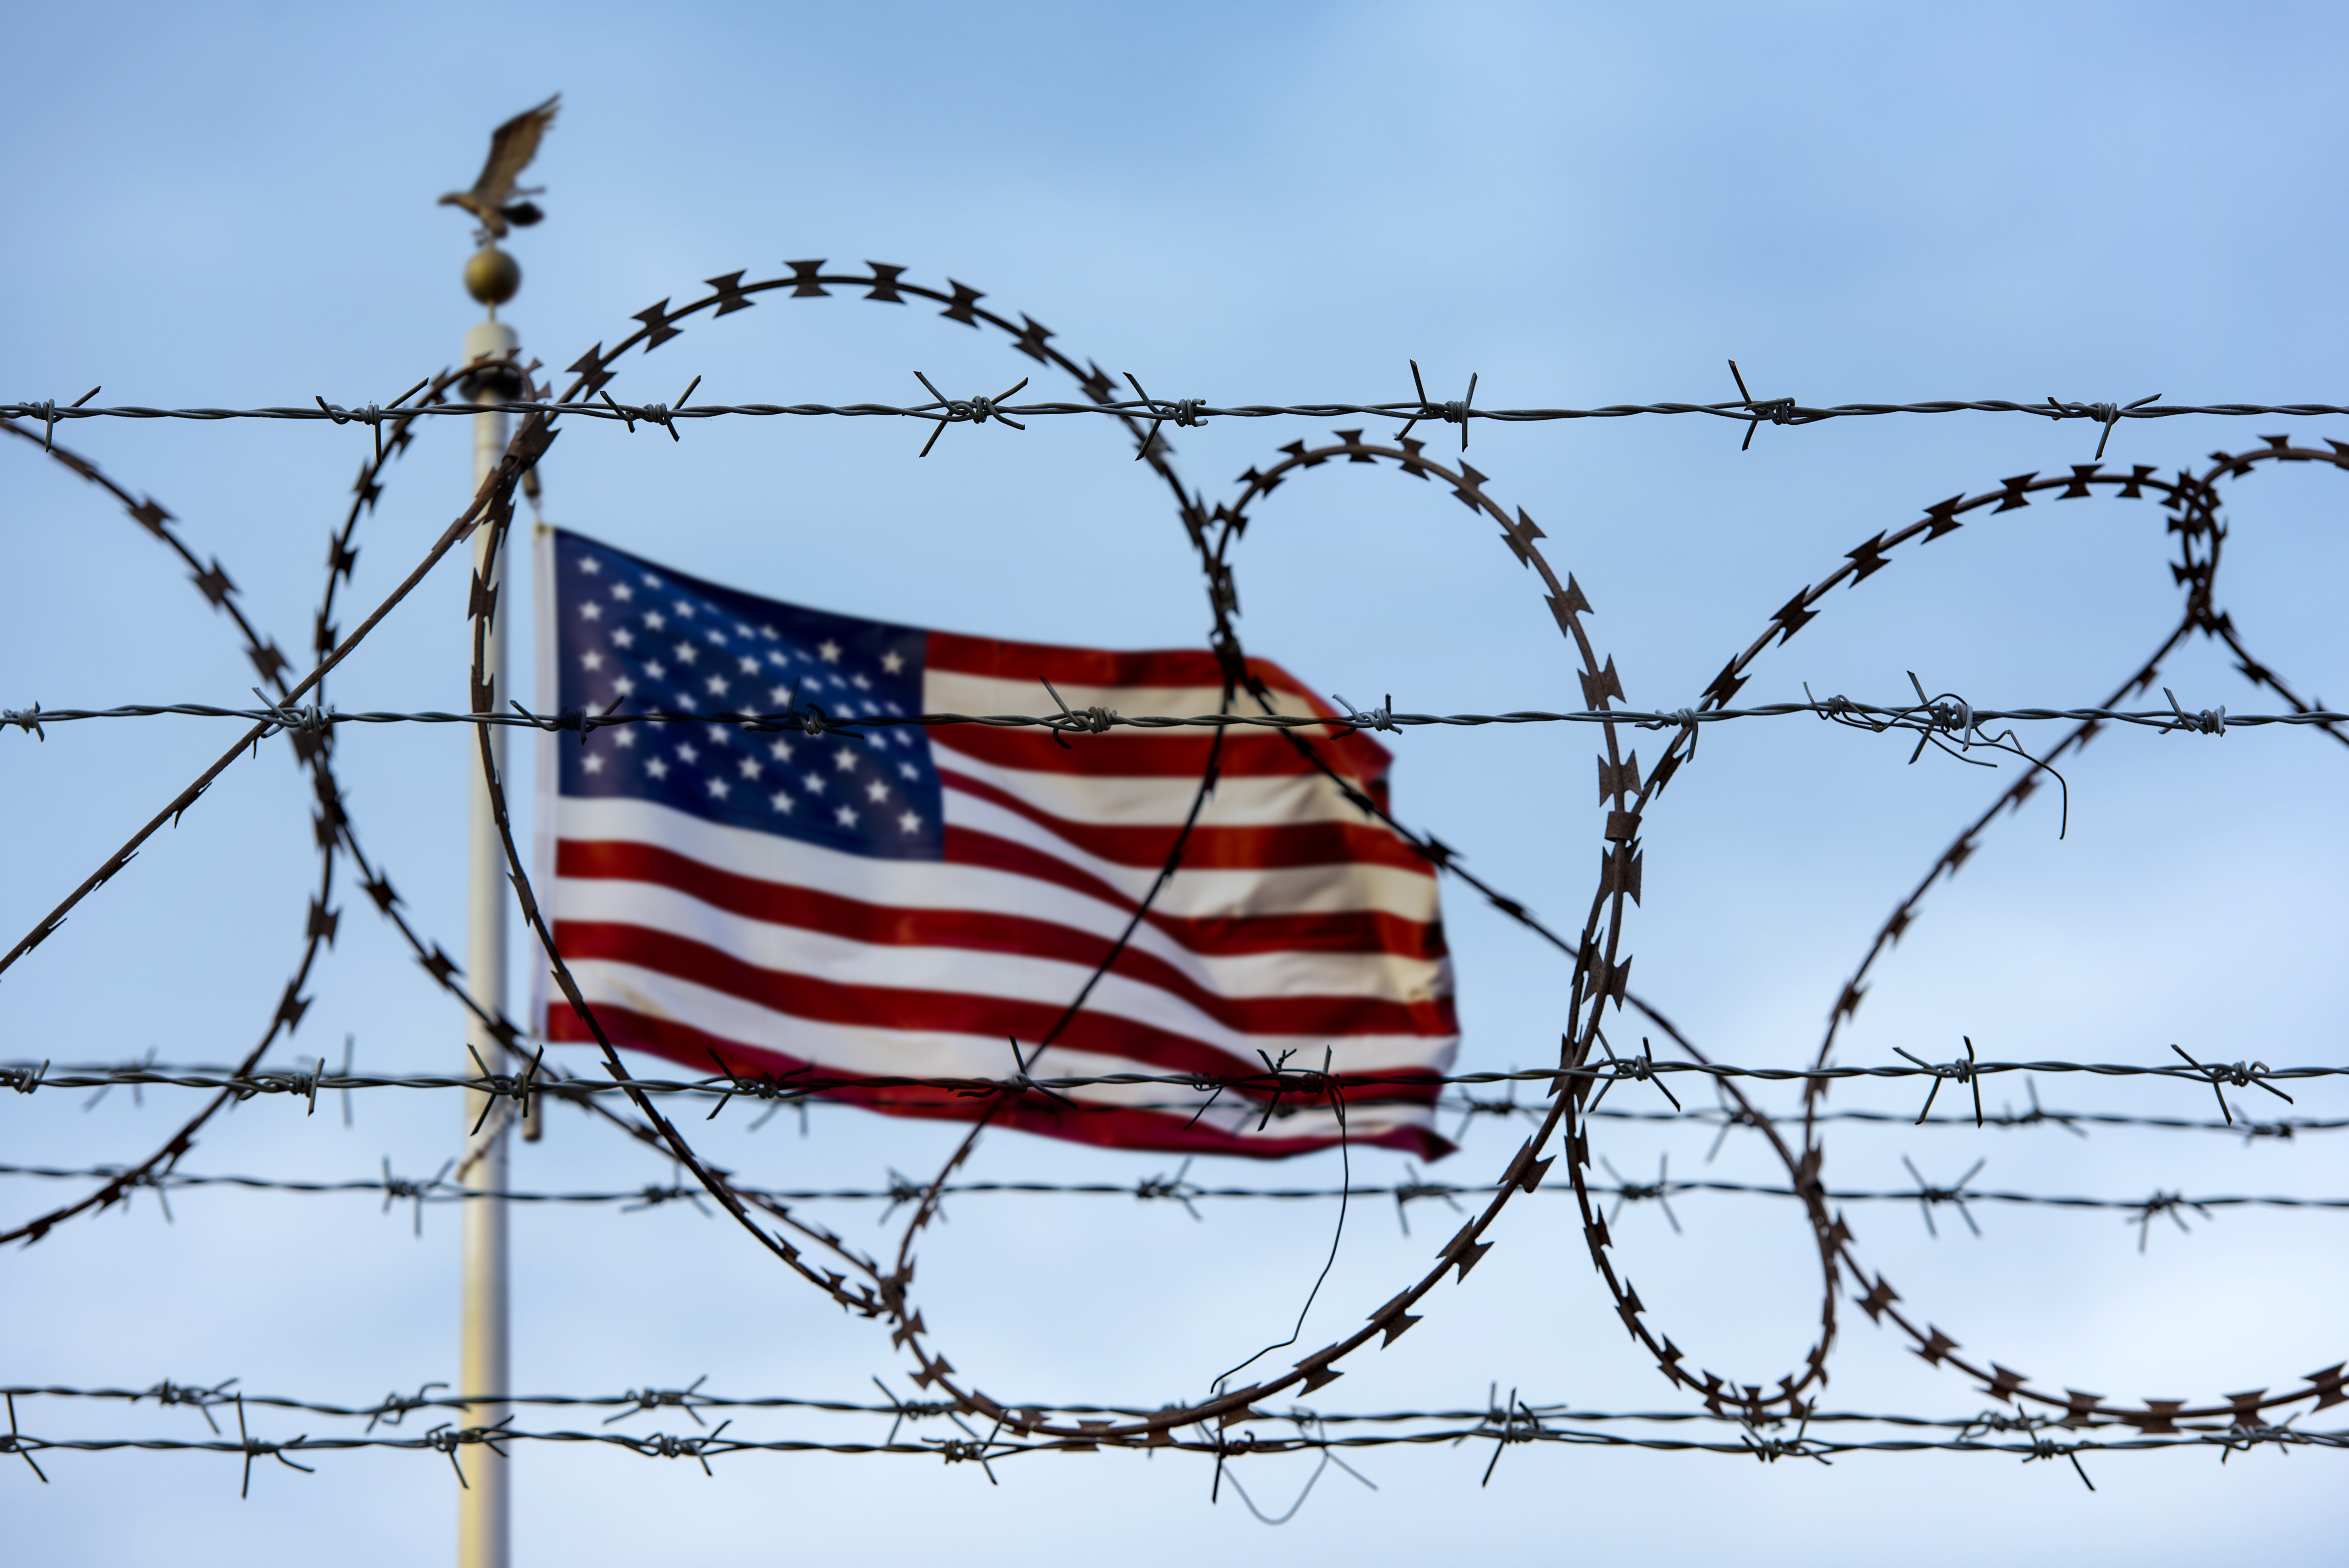 DACA behind barbed wire